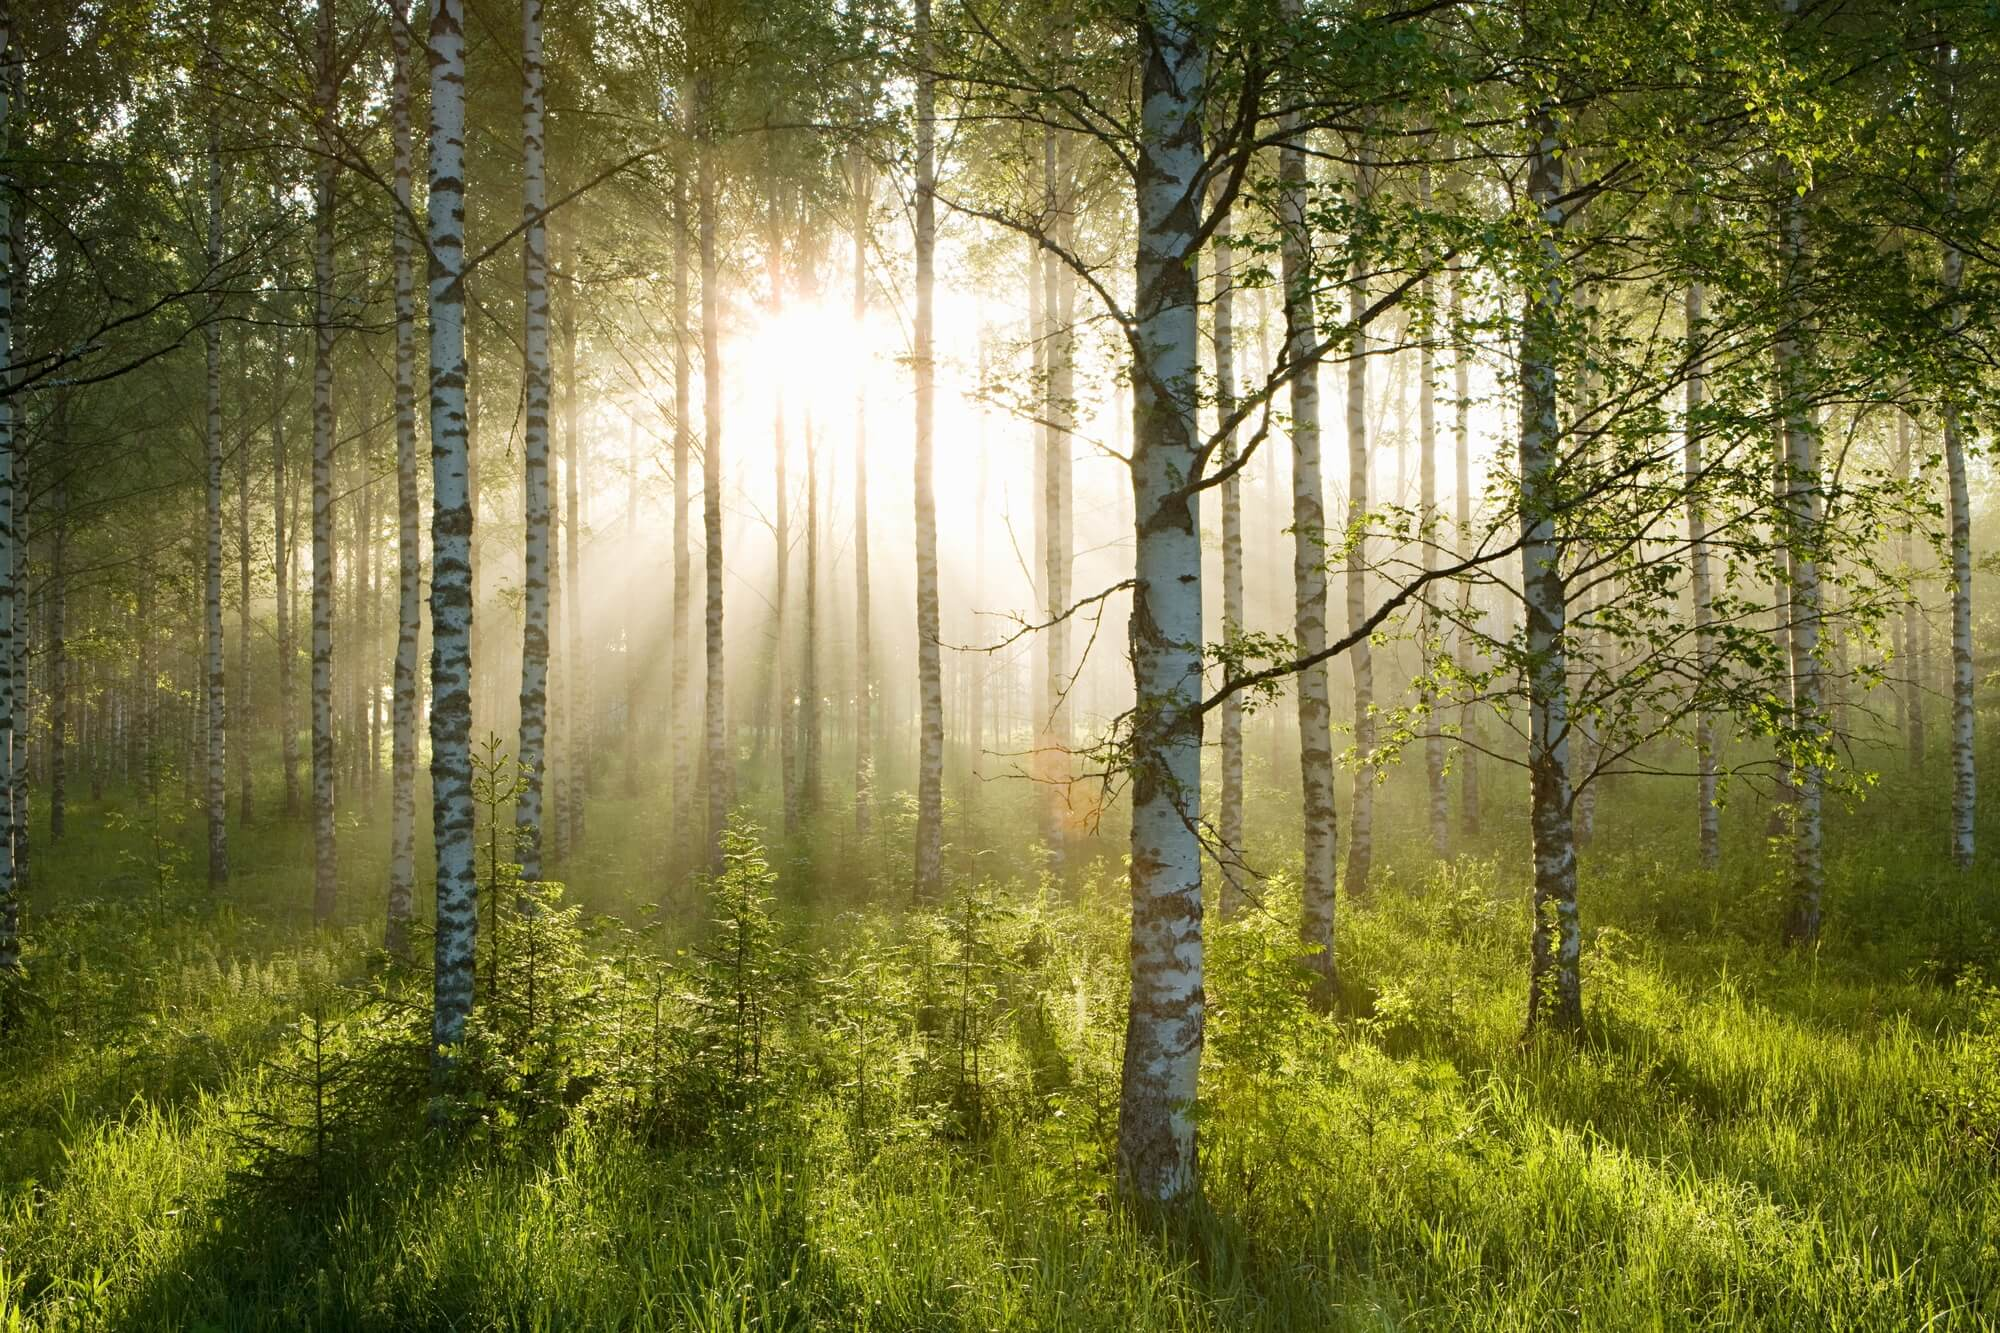 Birch Forest Sunlight Wallpaper Mural